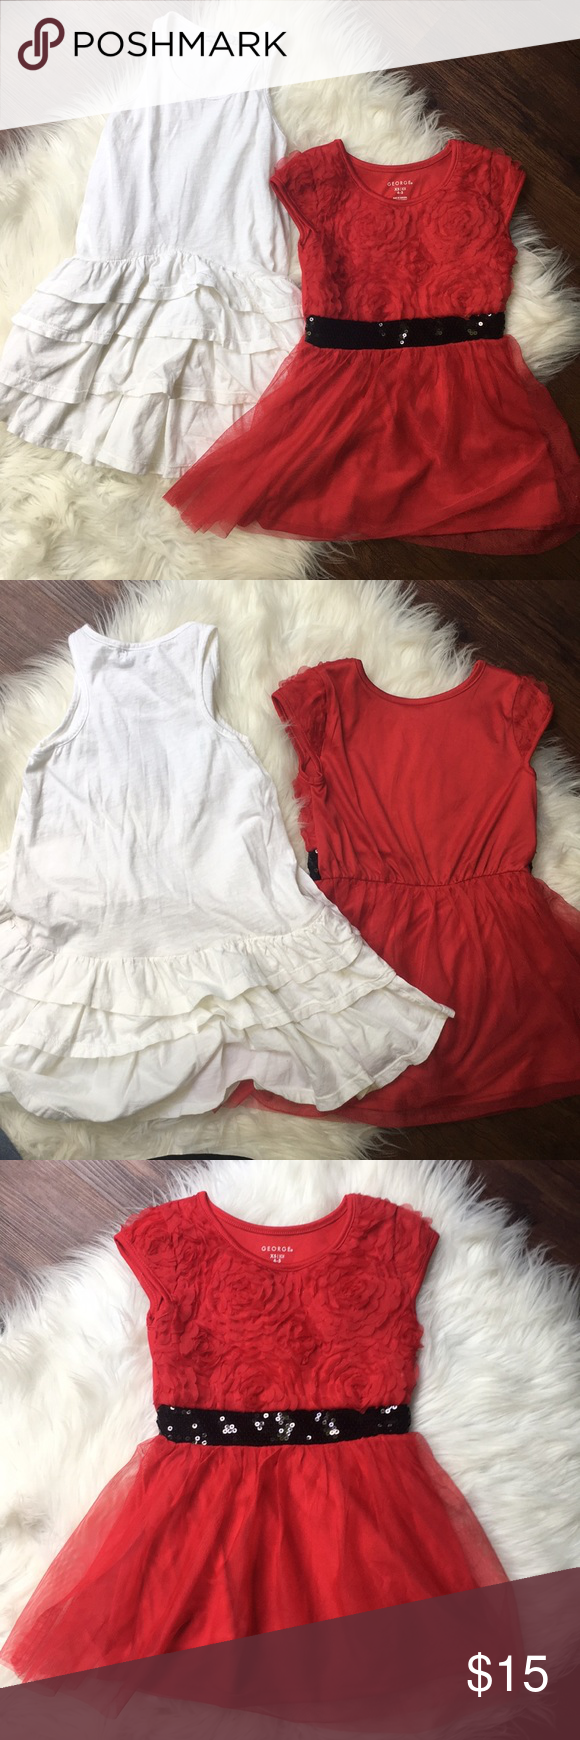 4t Dress Bundle Of 2 Red White Dress Previously Loved If You Need Any Specific Measurements Please Ask And I Will G Red And White Dress Dresses 4t Dress [ 1740 x 580 Pixel ]